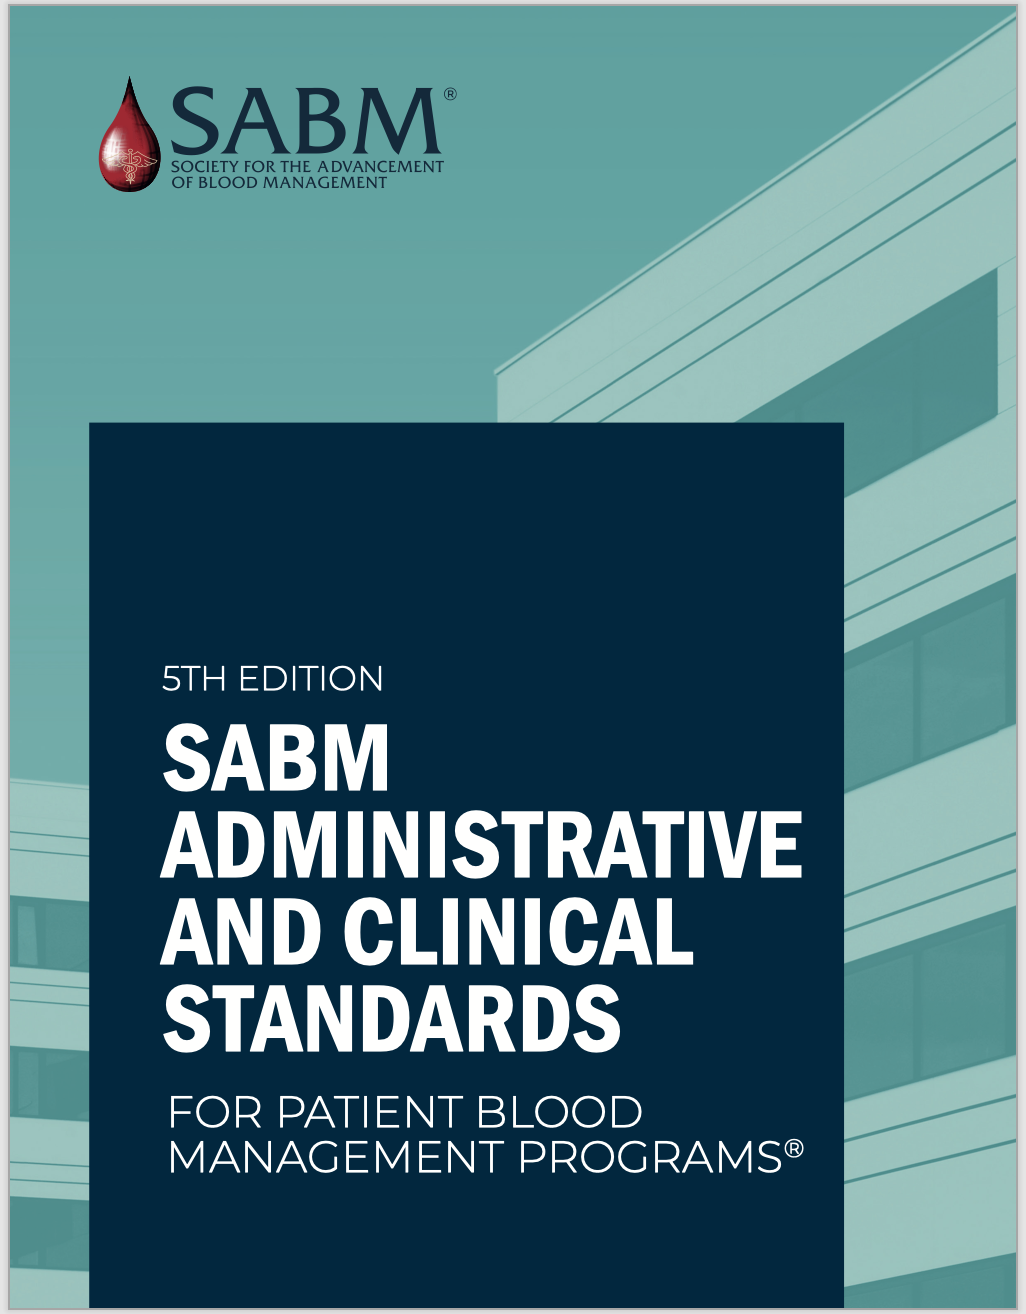 SABM Administrative and Clinical Standards for Patient Blood Management Programs, 5th Edition